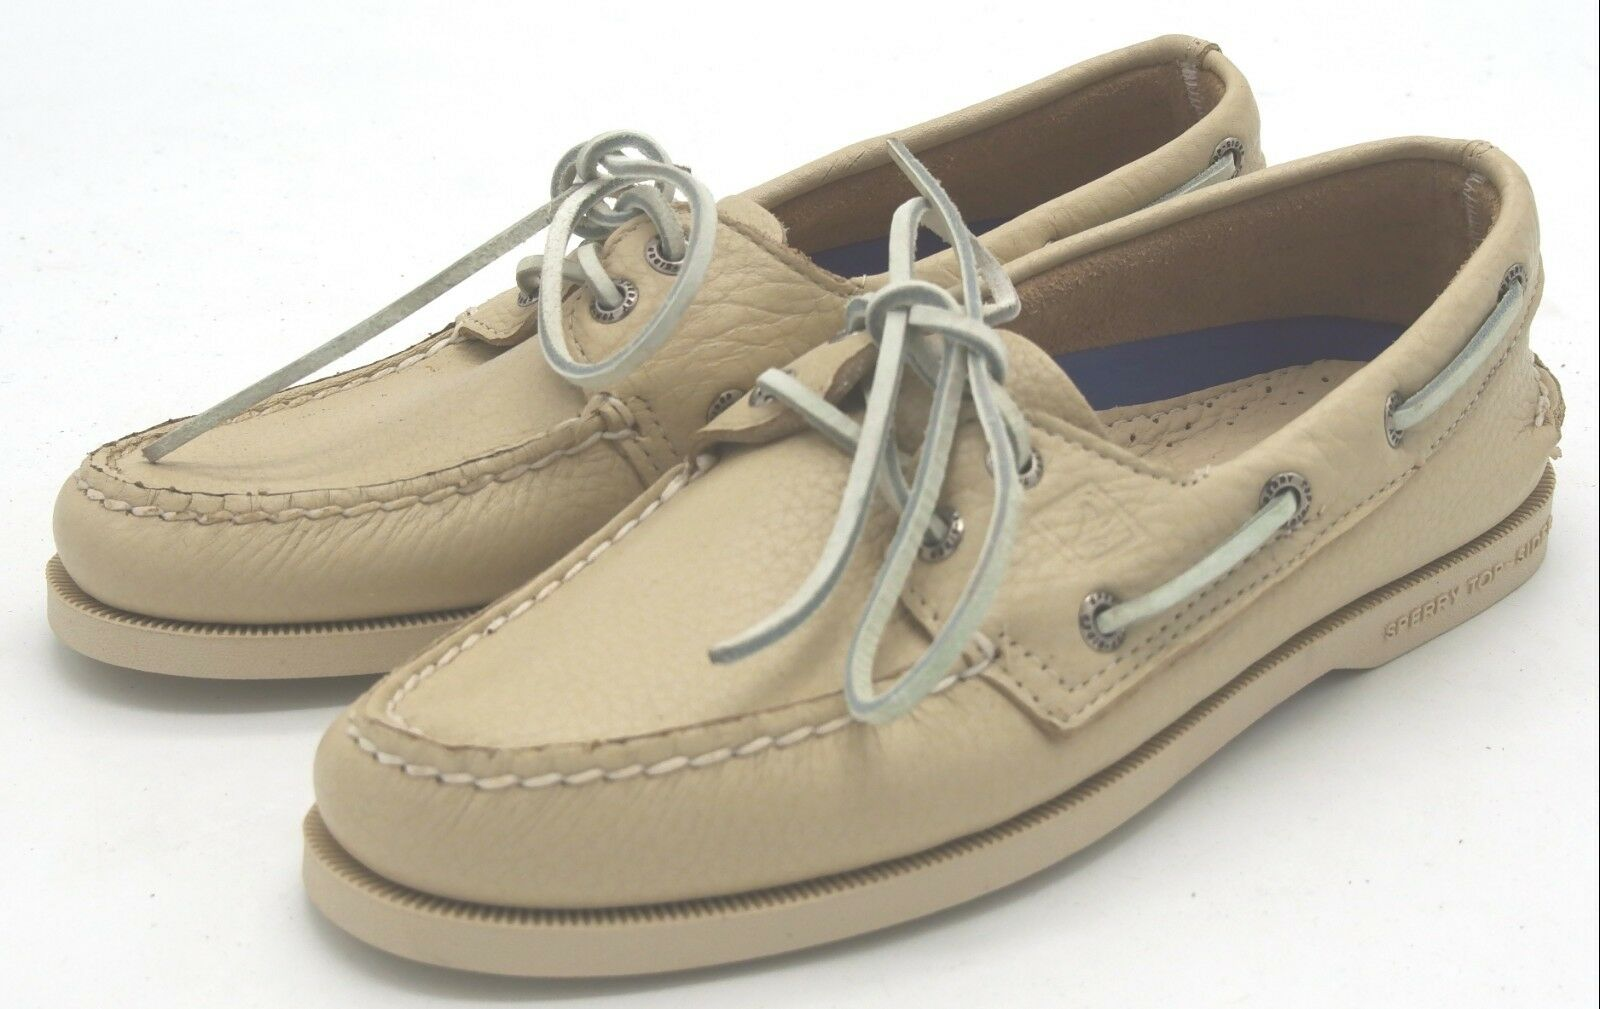 J6799 New Men's Sperry Top Sider 2 Eye Boat shoes White 16 M